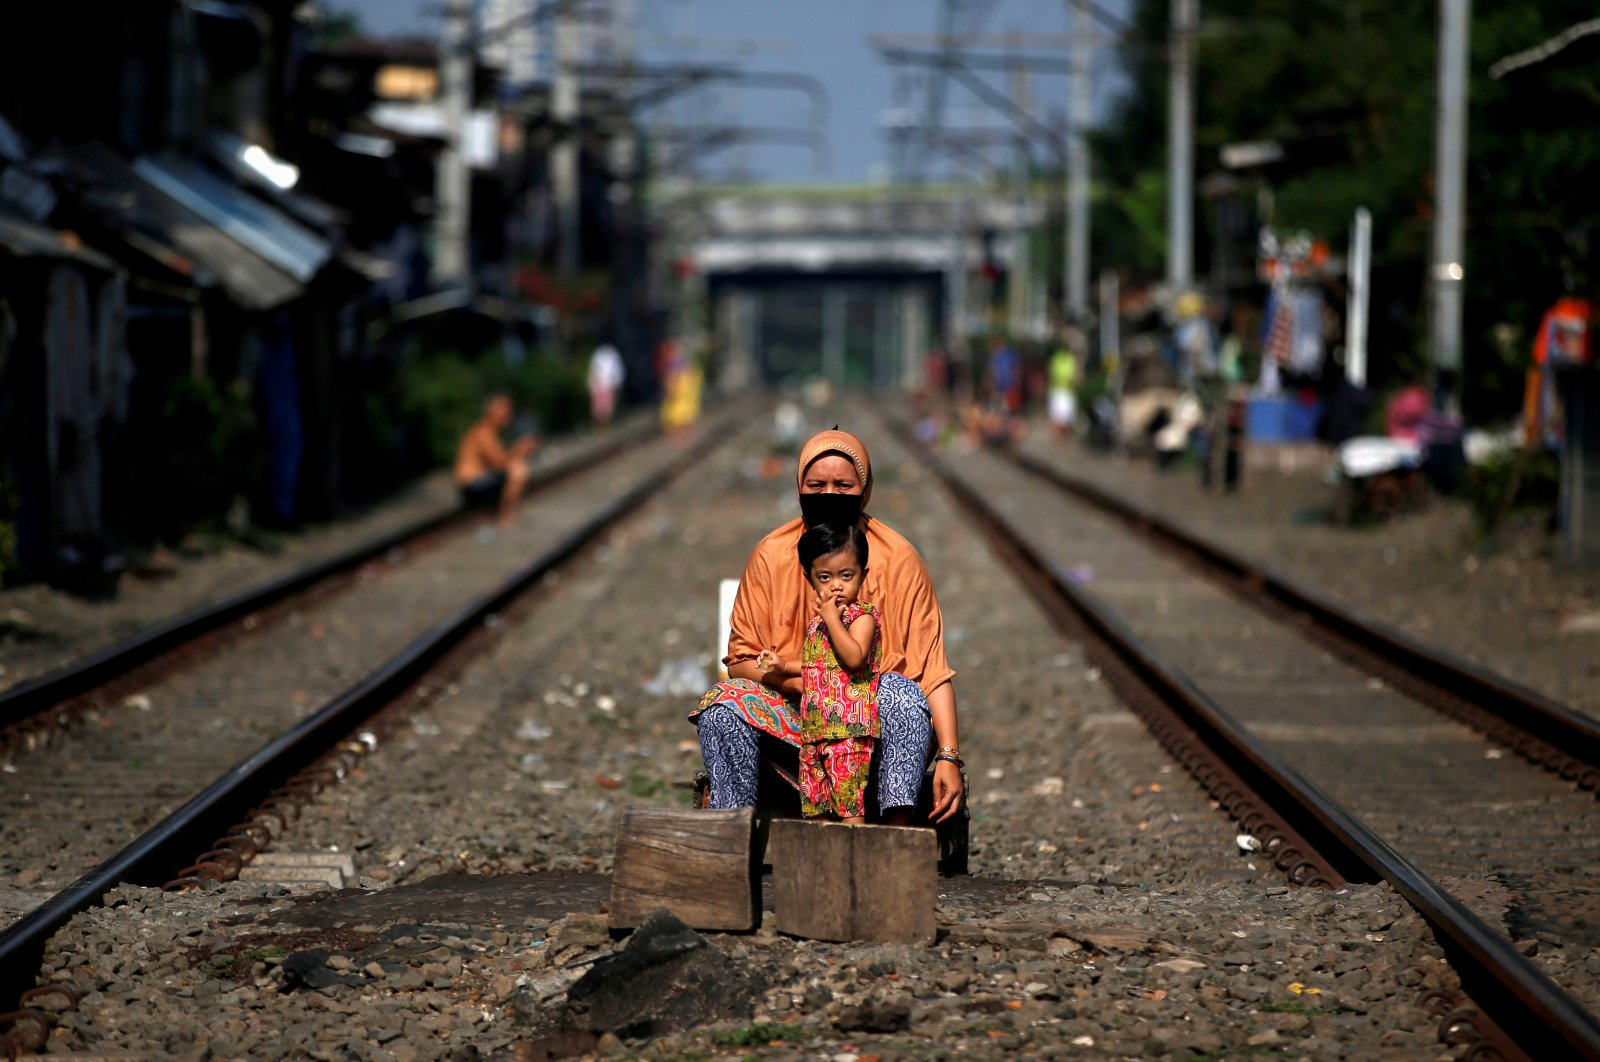 A woman wearing a face mask and a child sit between rail tracks, during the imposition of large-scale social restrictions by the government to prevent the spread of the coronavirus disease in Jakarta, Indonesia, April 12, 2020. (Reuters Photo)